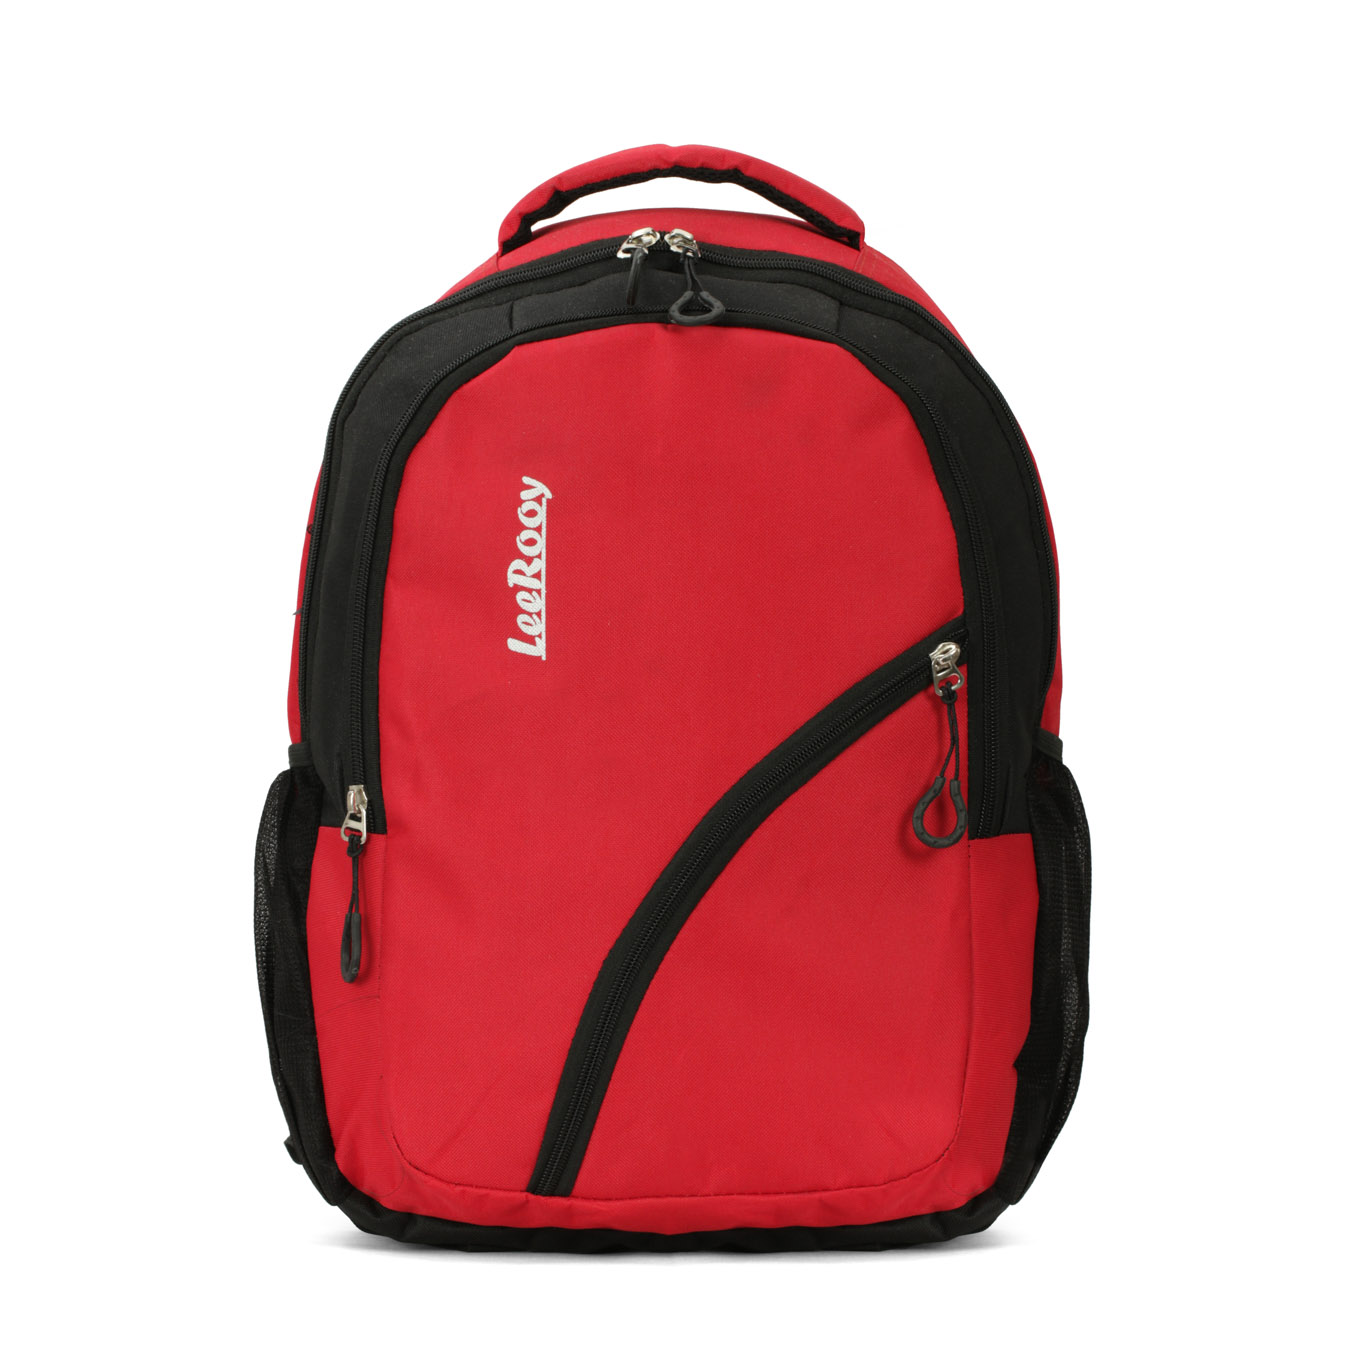 LeeRooy 25 L Nylon Red 3 Compartment Laptop Bag for Women and Men Backpacks for Girls Boys Stylish Trending Bagpack